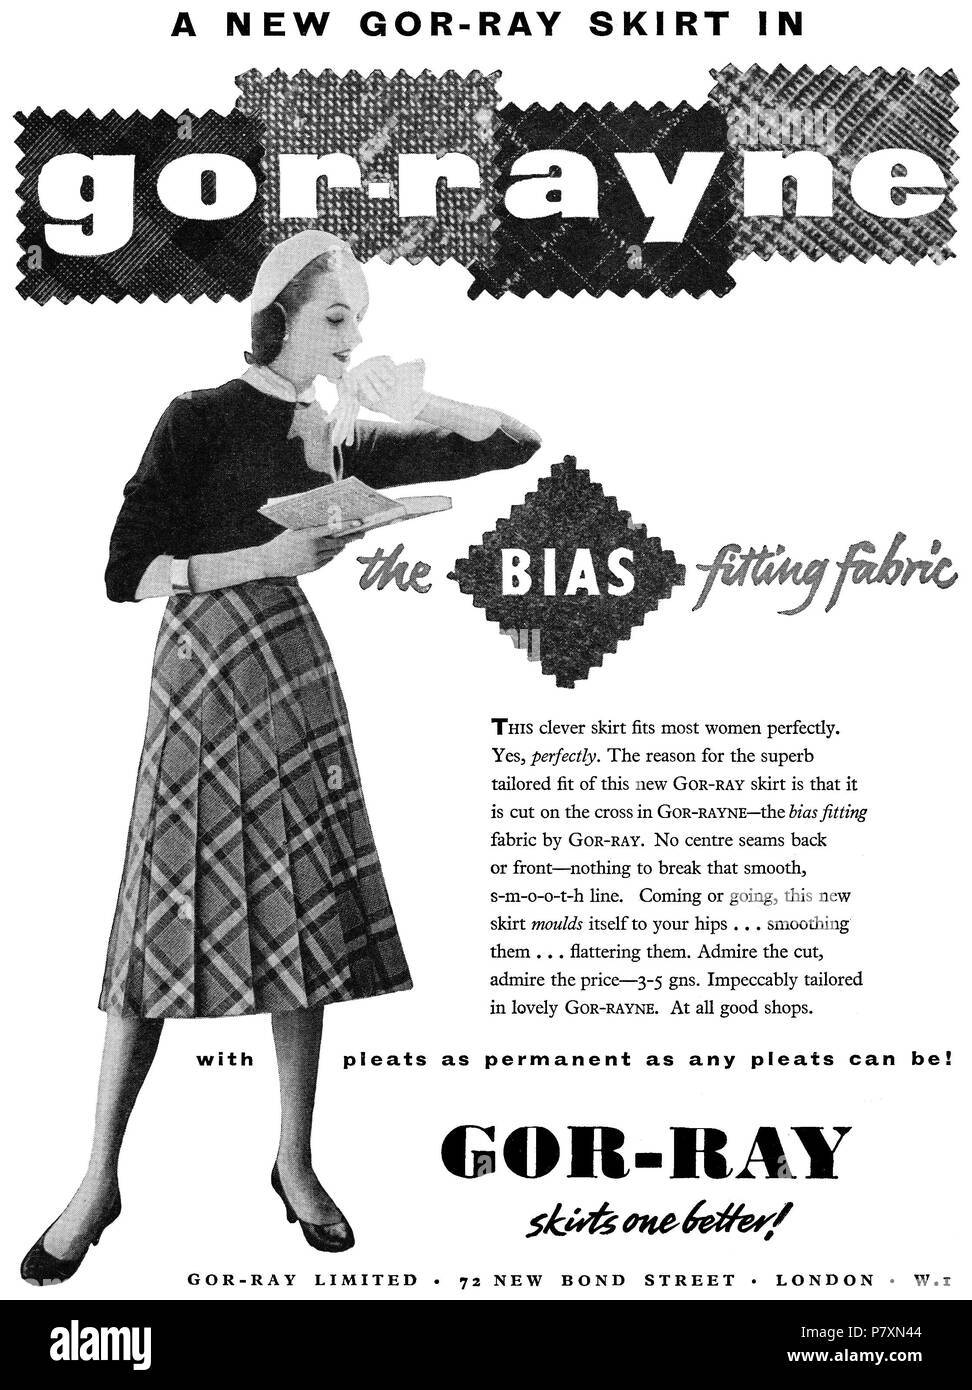 1956 British advertisement for Gor-Ray skirts. - Stock Image